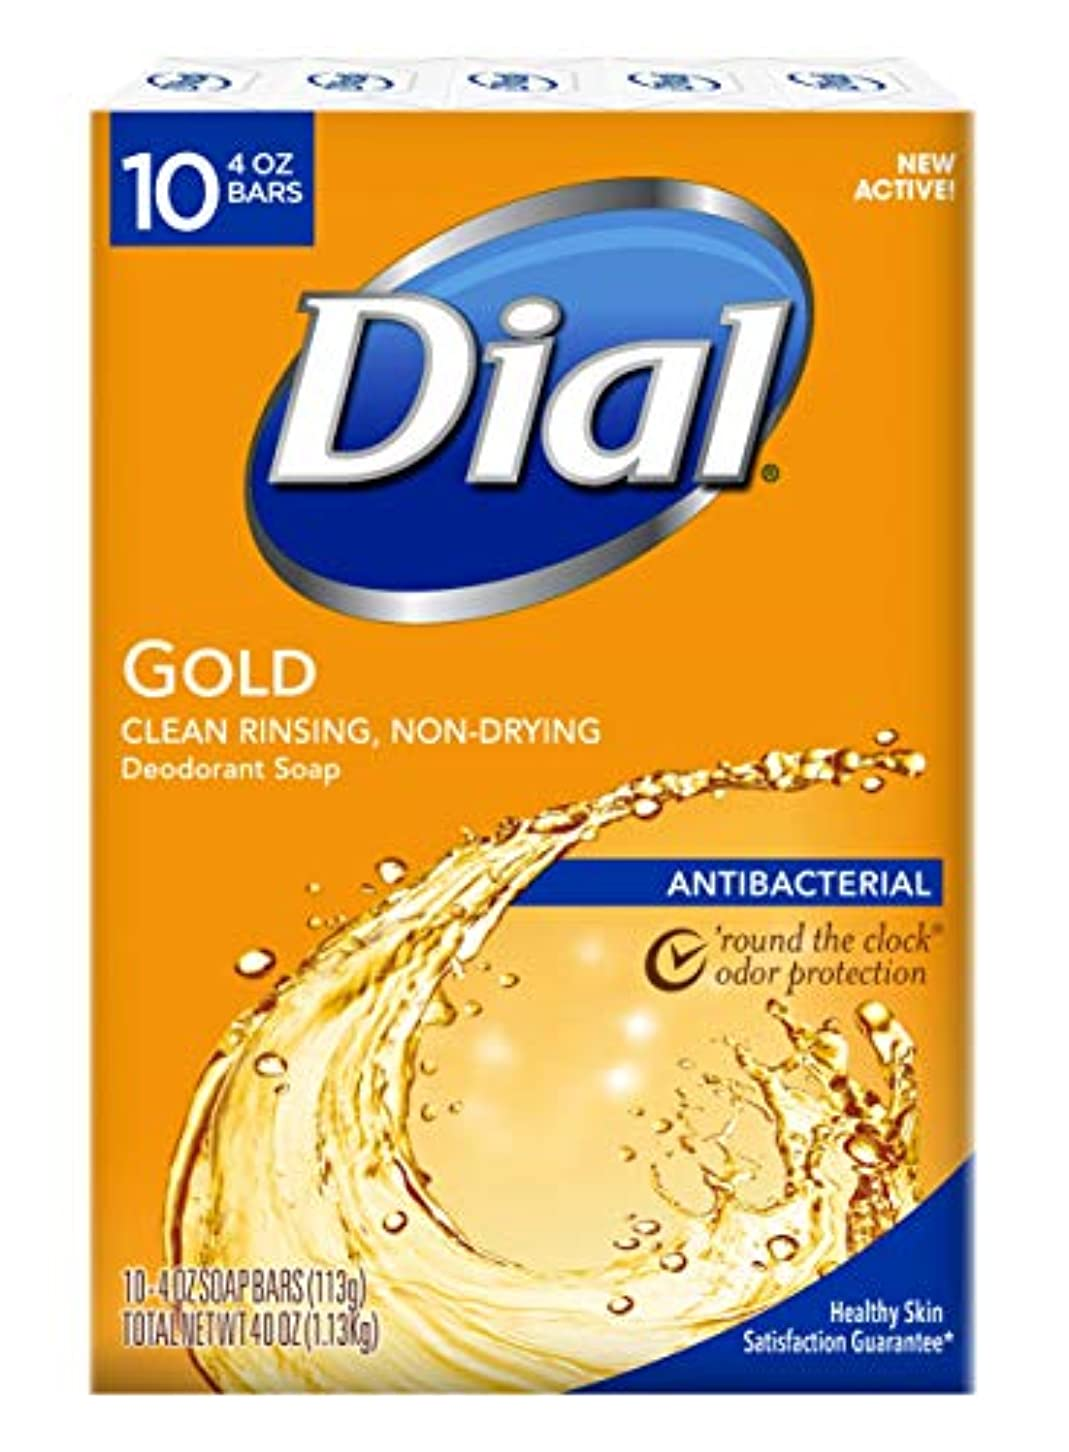 スペード地下雑種Dial Antibacterial Deodorant Bar Soap, Gold, 4-Ounce Bars, 10 Count (Pack of 3)